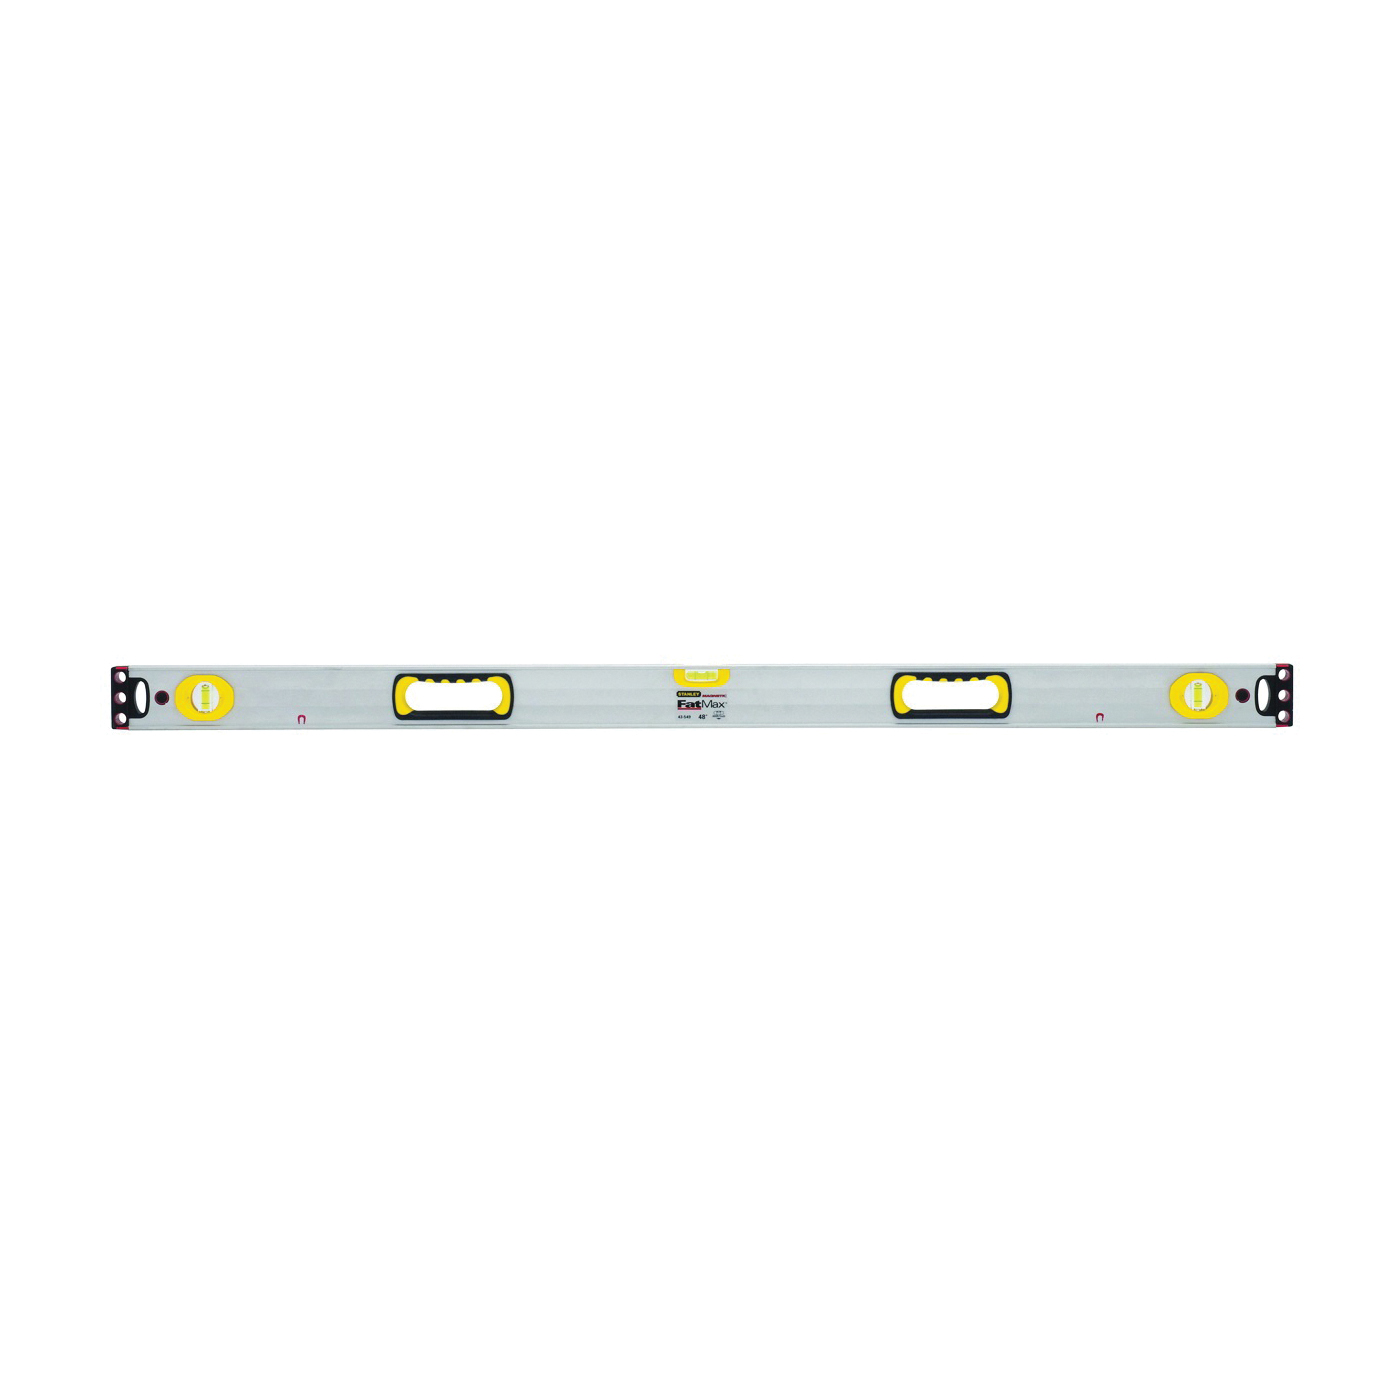 Picture of STANLEY 43-549 Box Beam Level, 48 in L, 3 -Vial, 2 -Hang Hole, Magnetic, Aluminum, Silver/Yellow